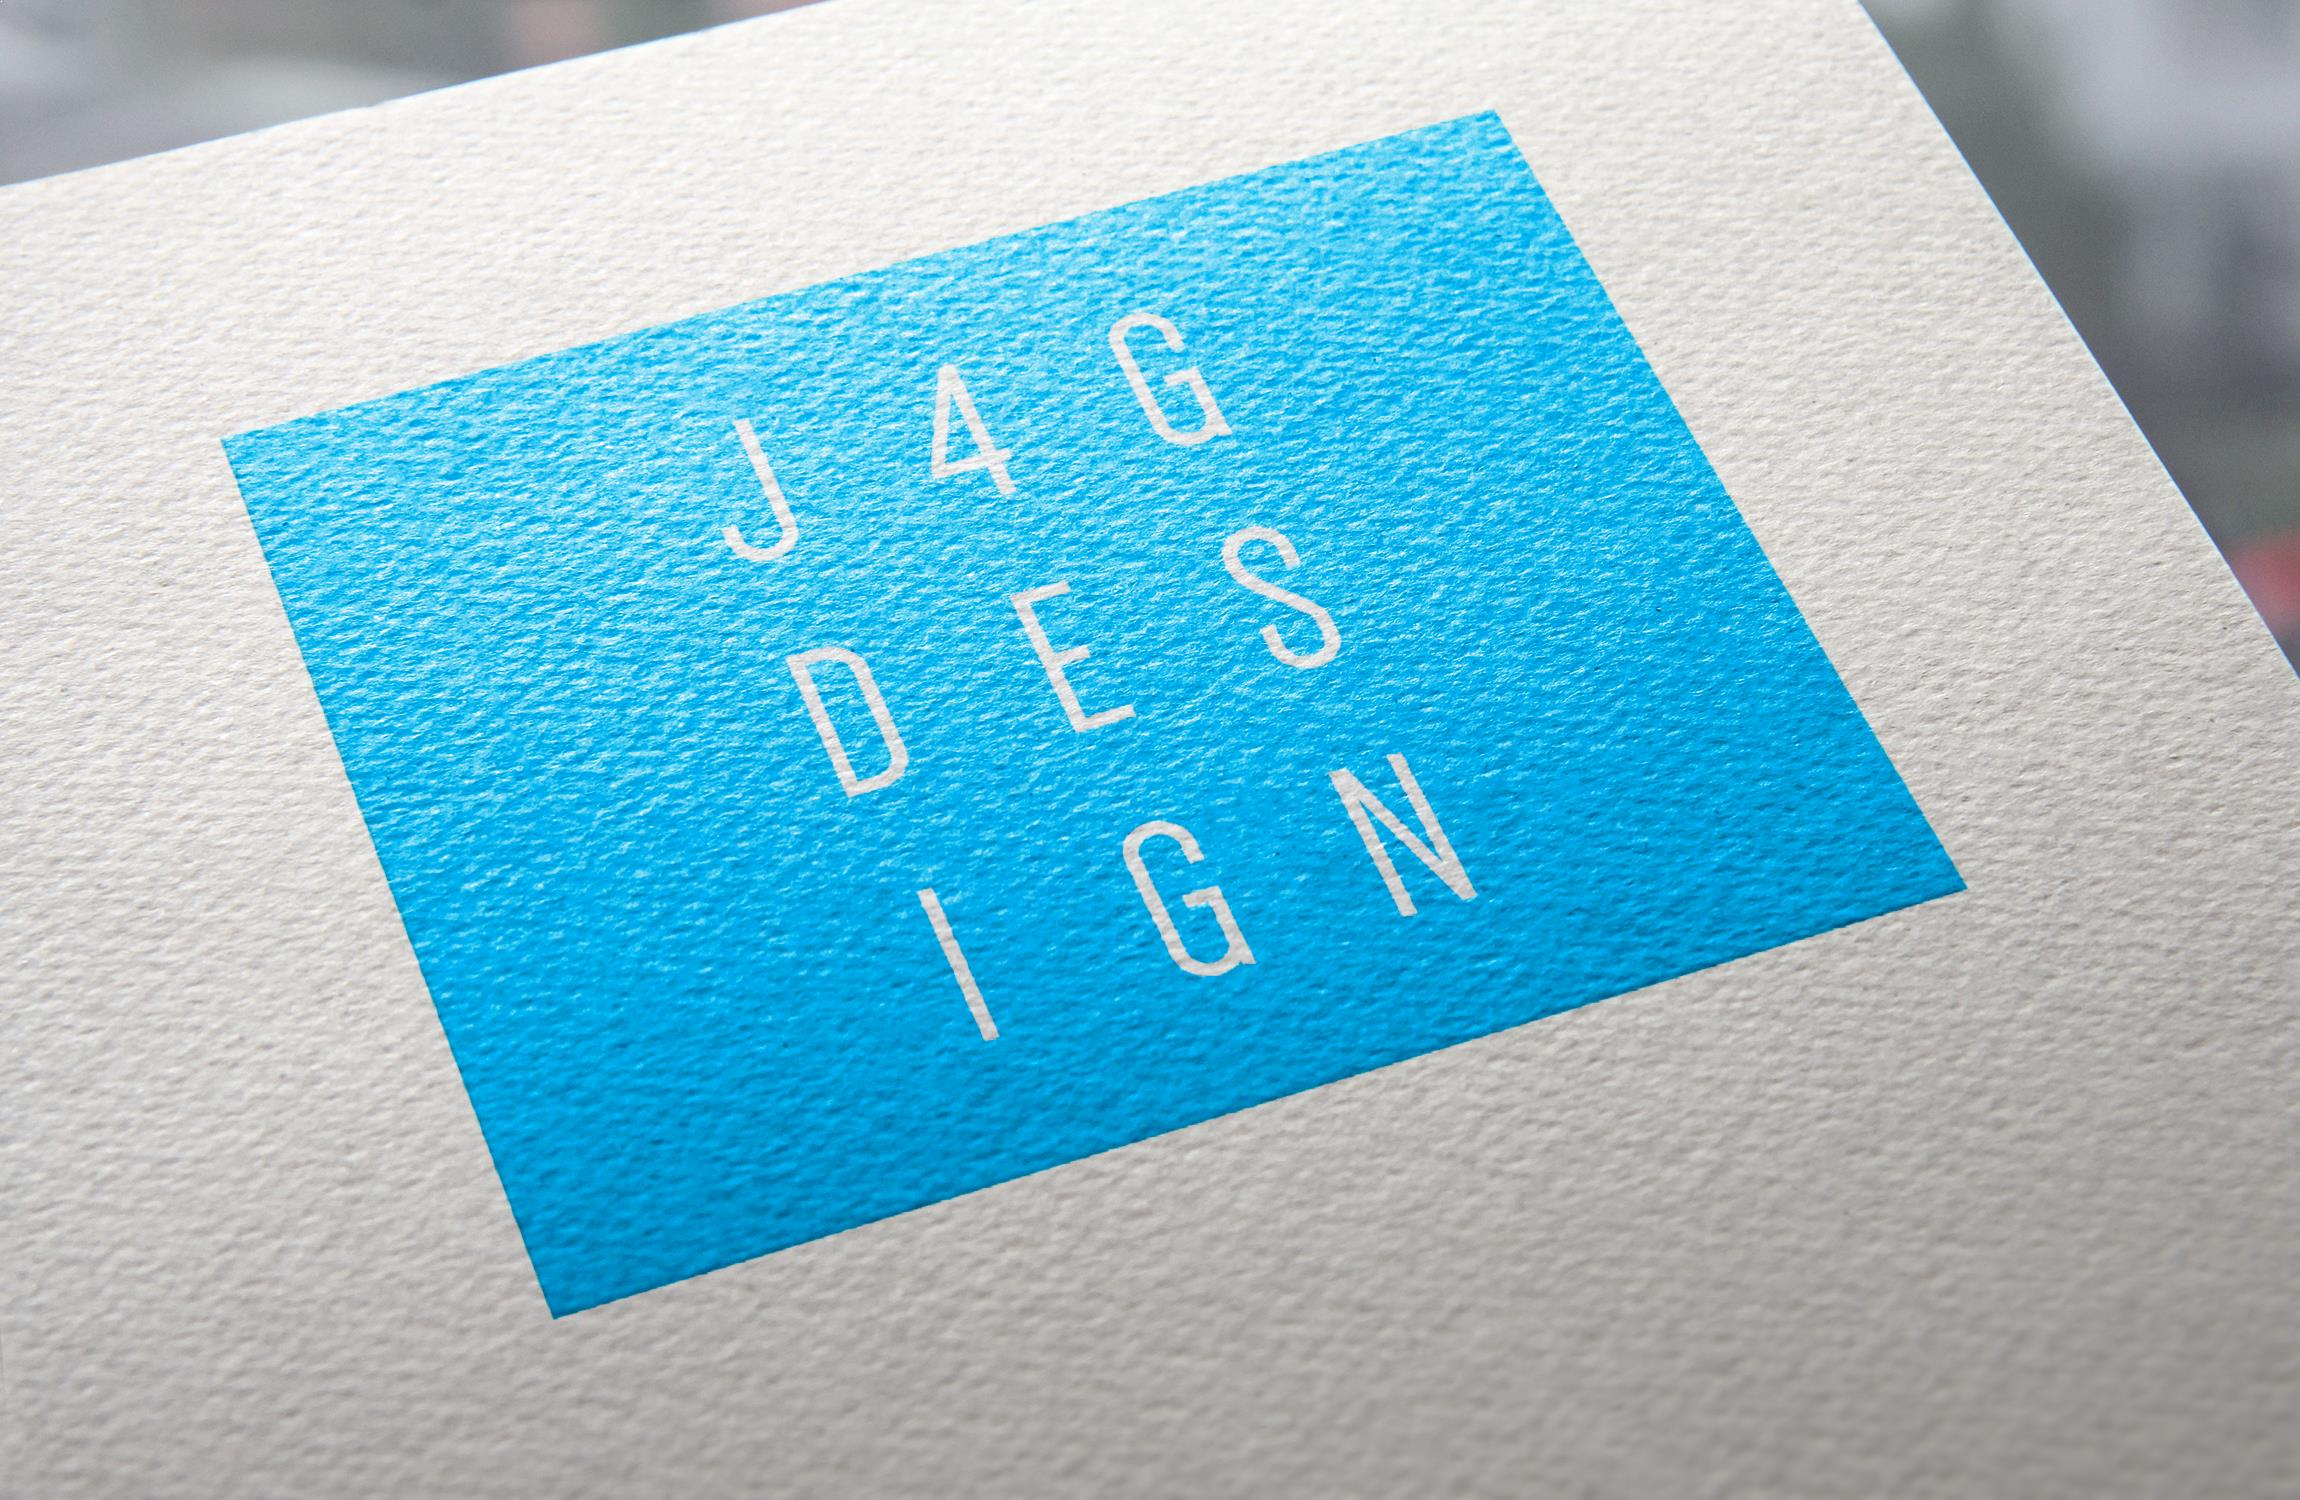 J4G Design logo on the top of an invoice, you can only see the corner